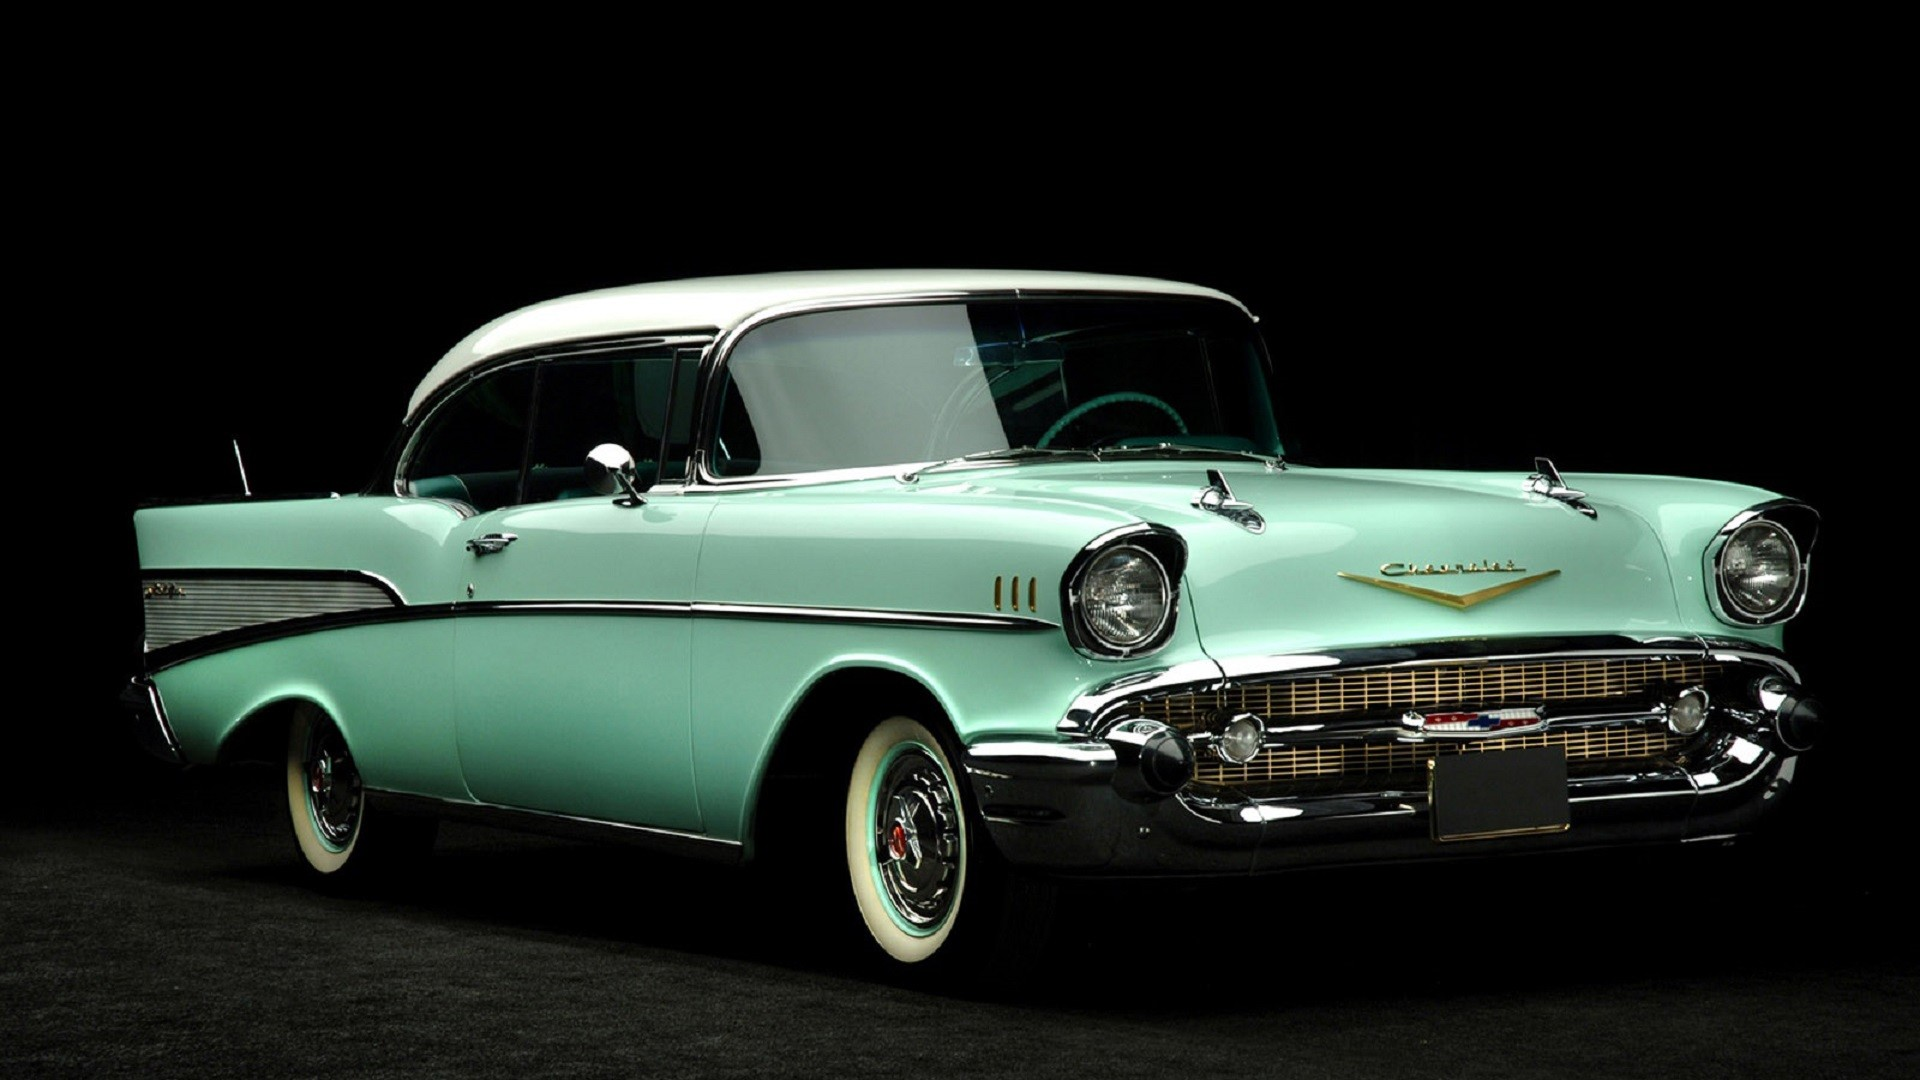 50s Car Wallpaper Iphone 57 Chevy Wallpapers 62 Background Pictures